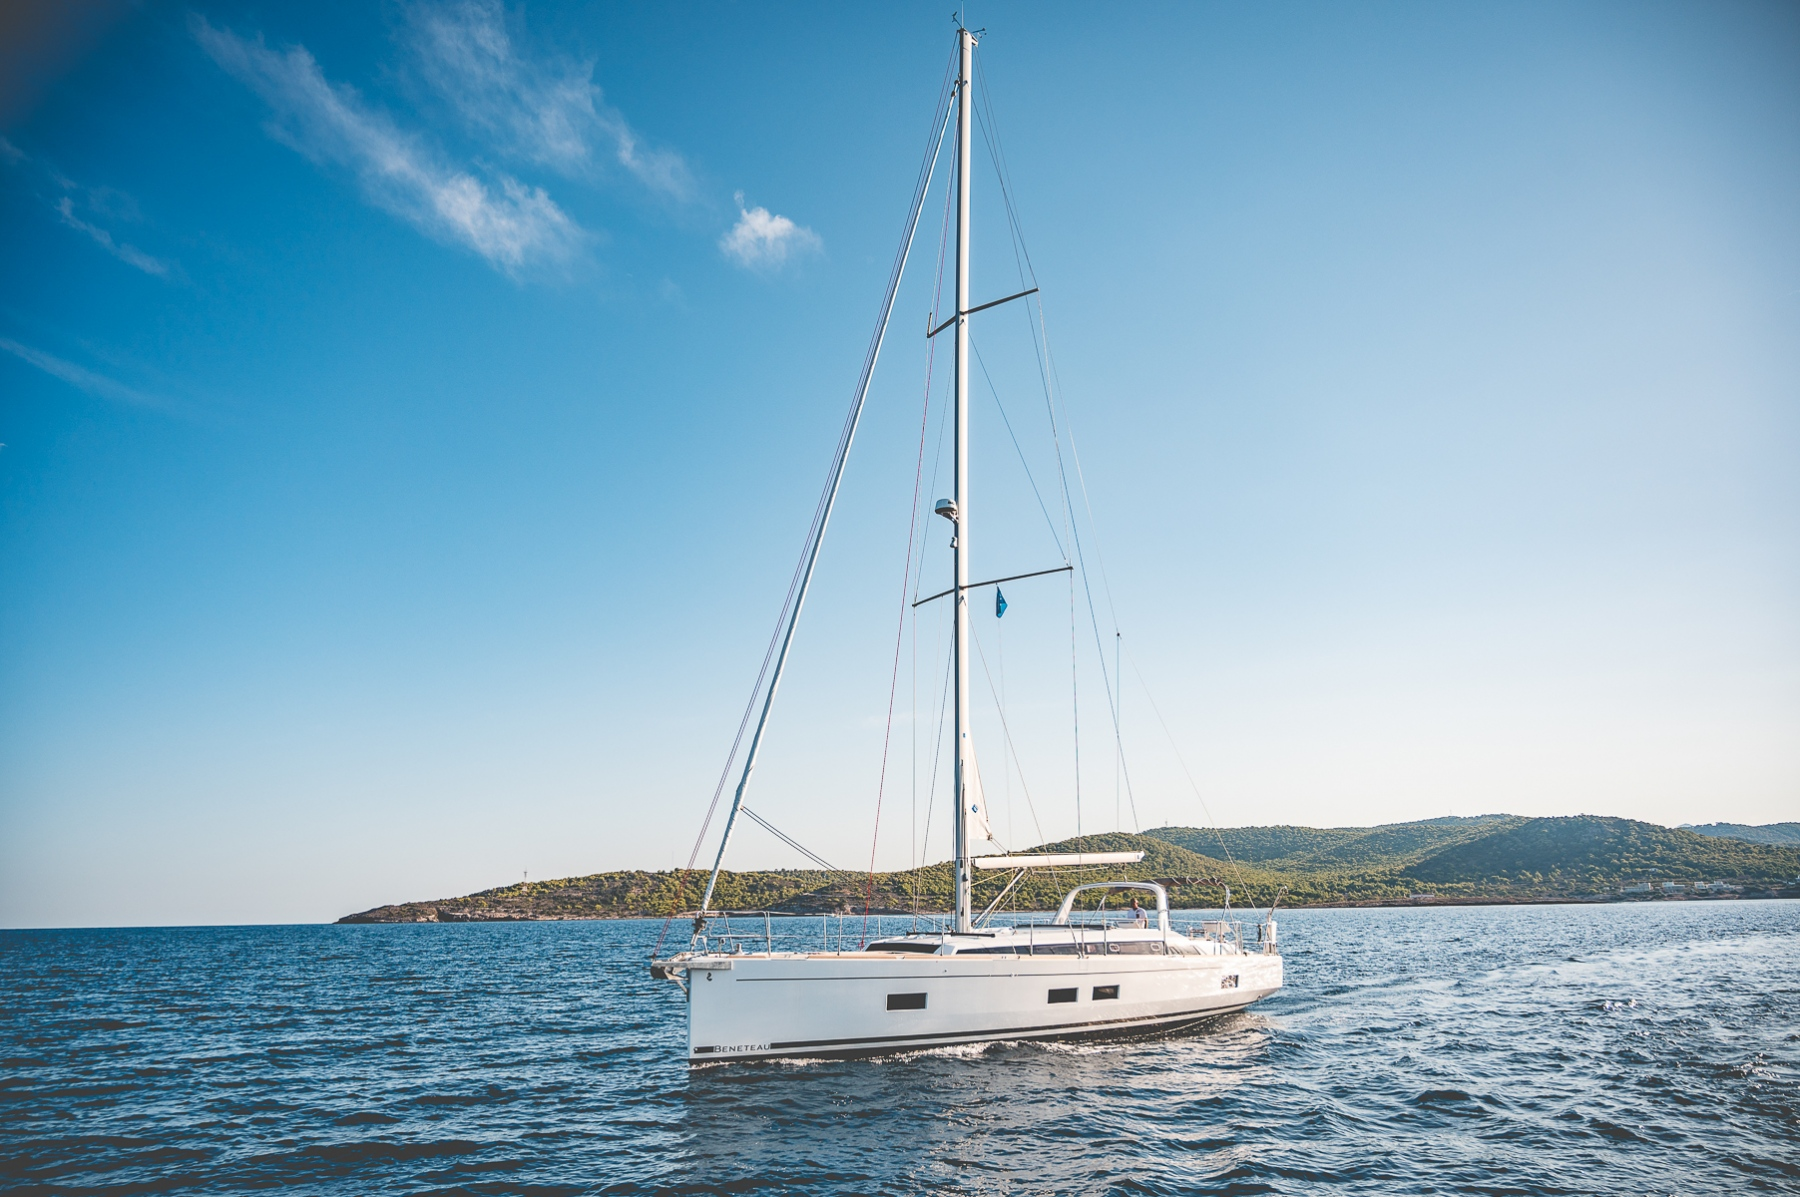 Beneteau Oceanis 55.1 Axis Mundi Greece